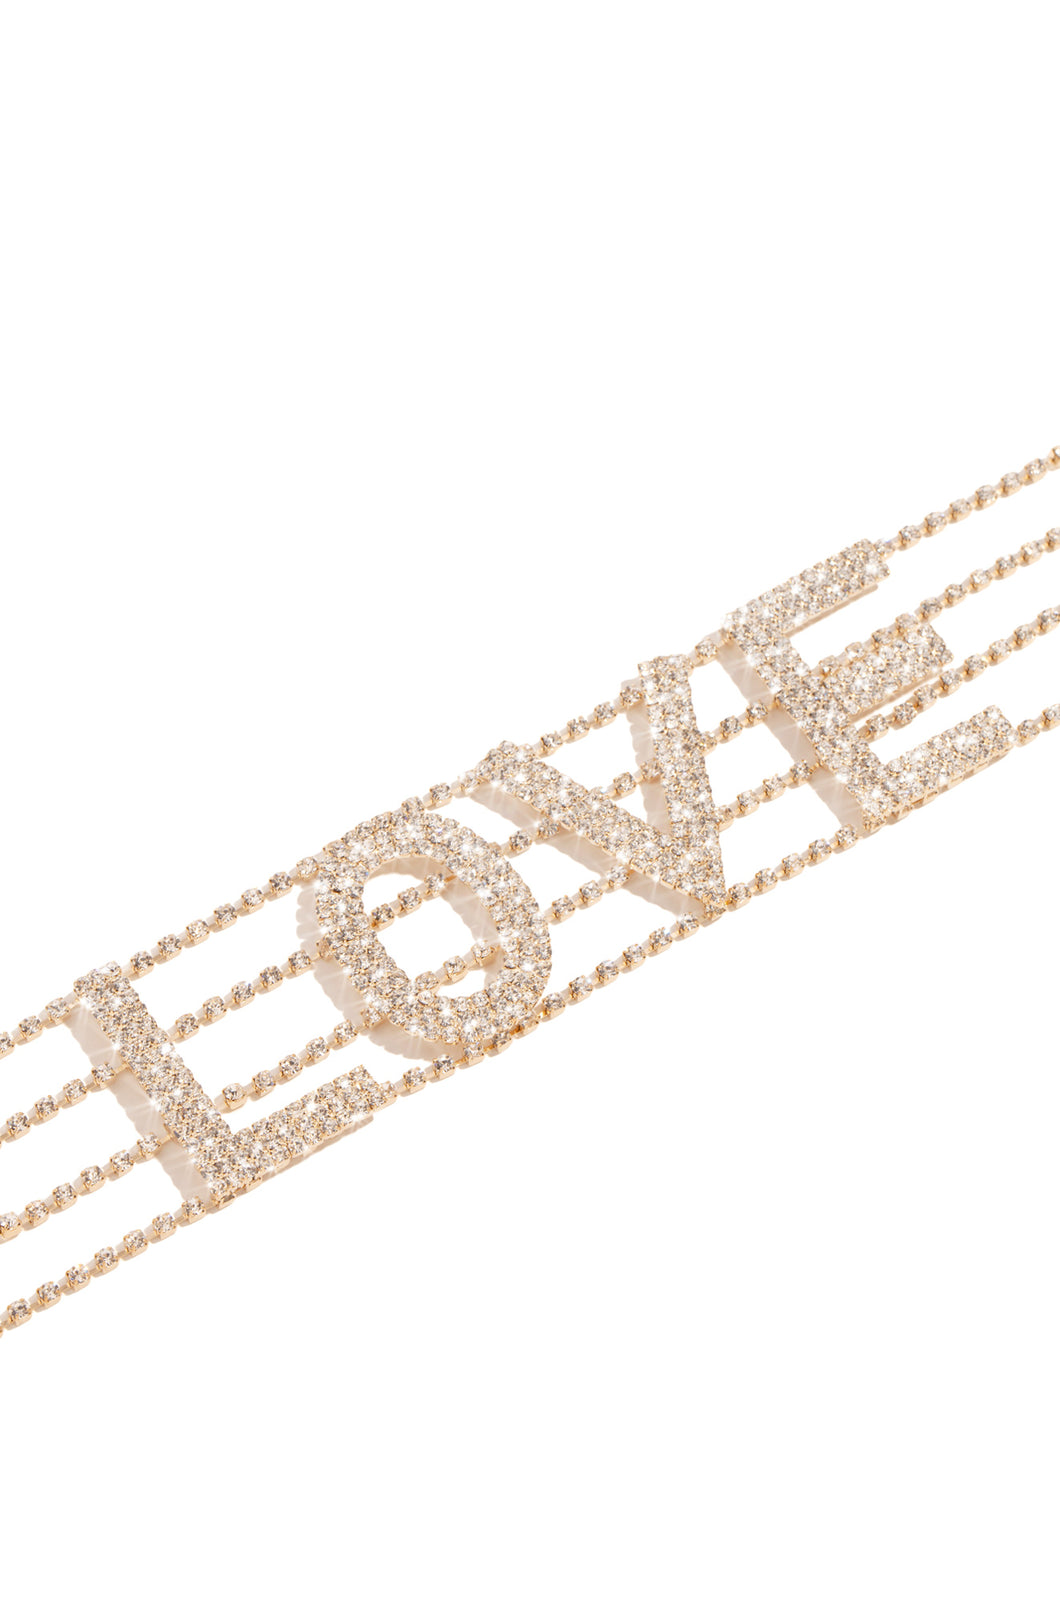 Toxic Love Choker - Gold